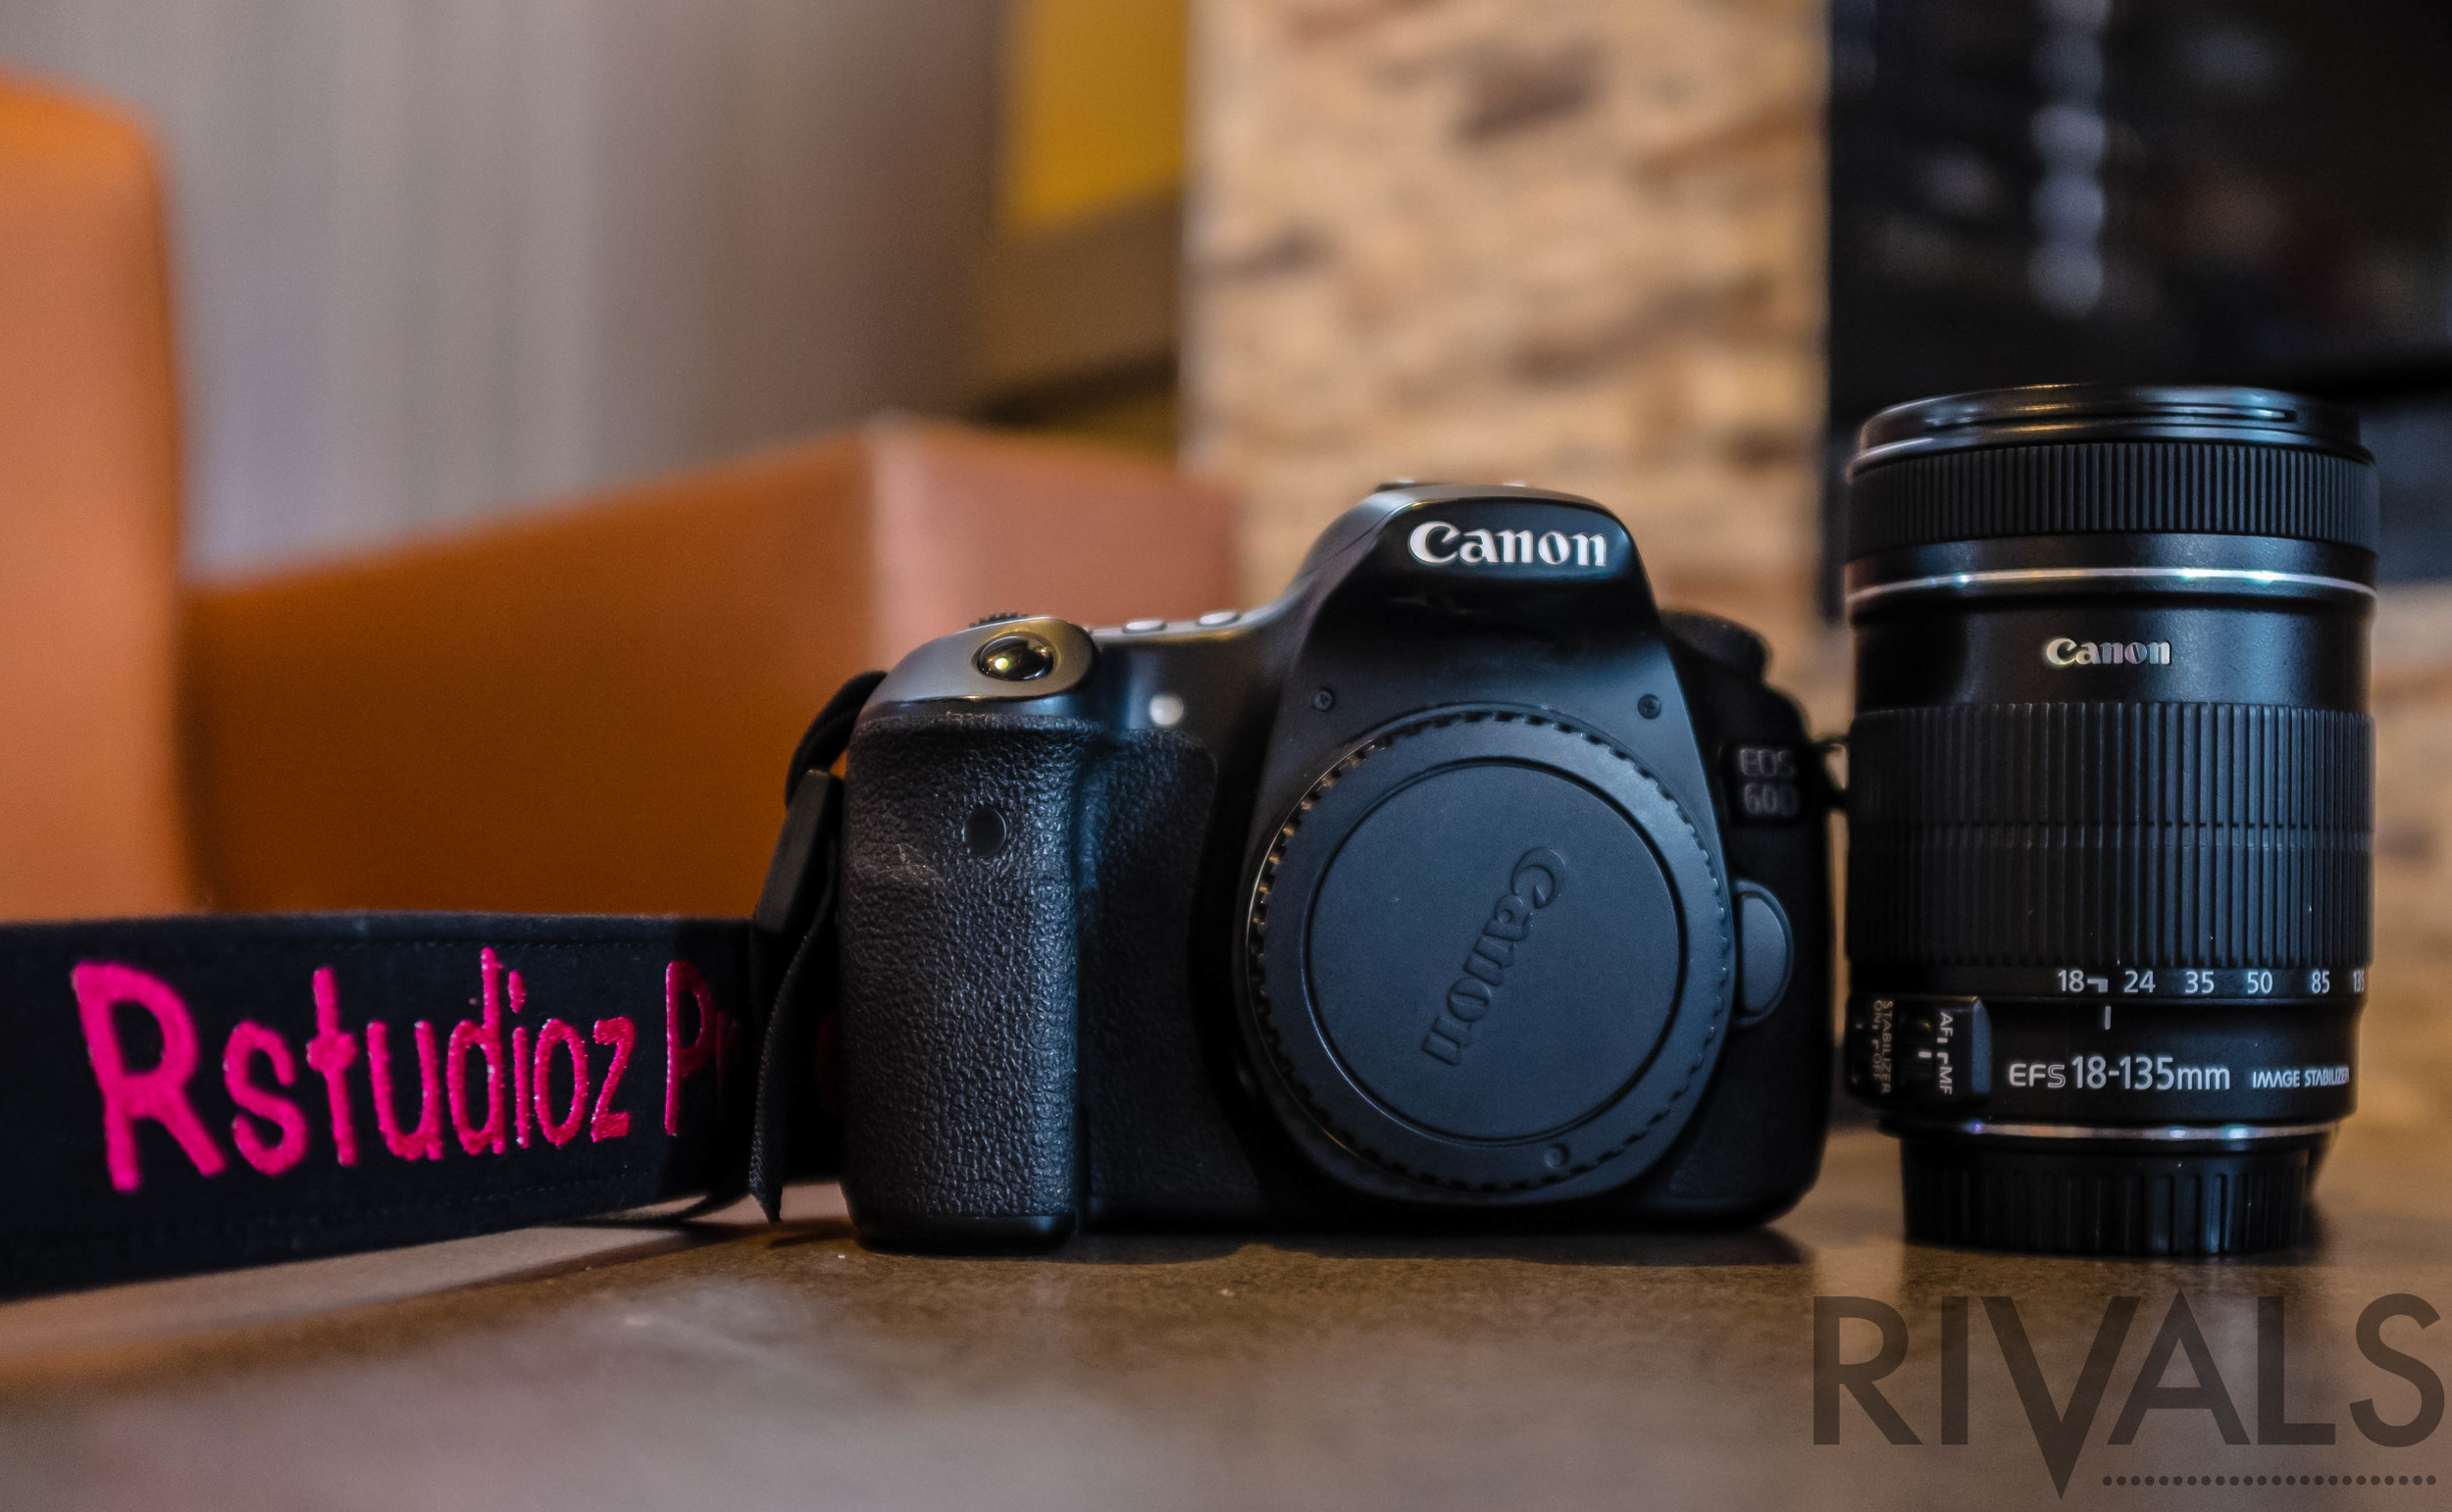 Thanks to  RSTUDIOZ for lending me his 60D